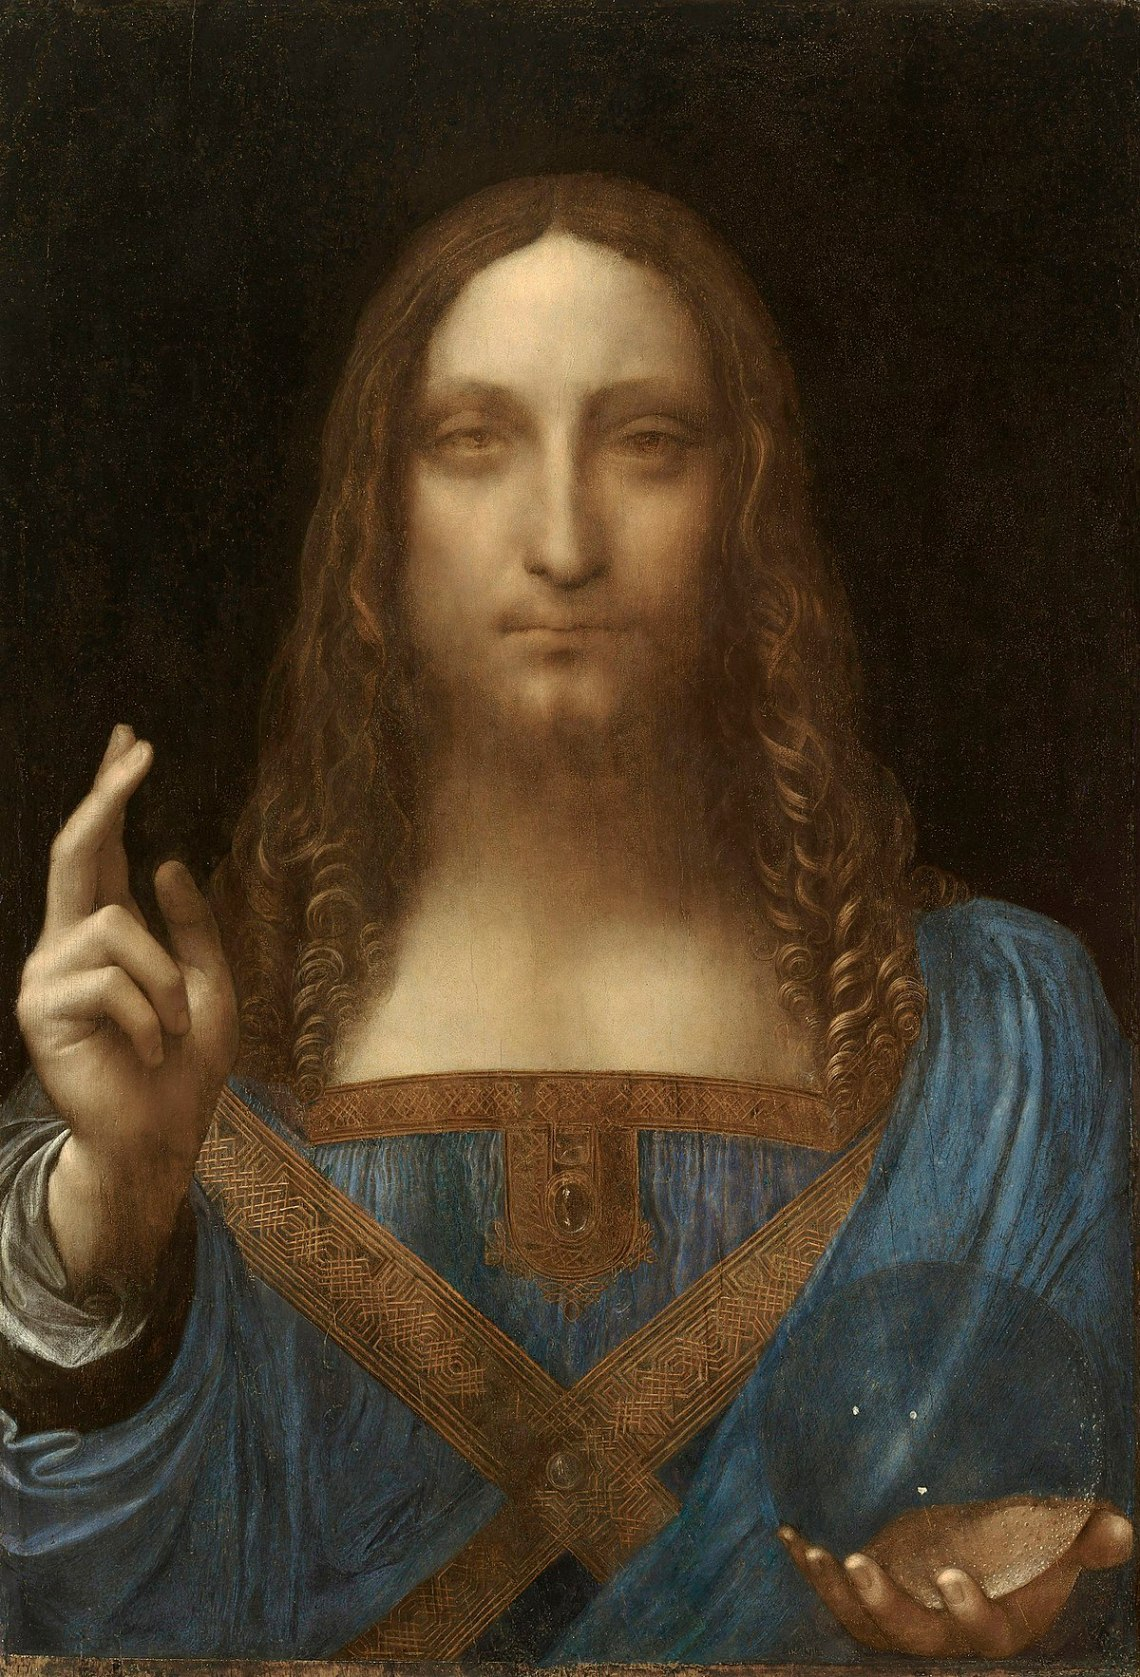 1200px-Leonardo_da_Vinci,_Salvator_Mundi,_c.1500,_oil_on_walnut,_45.4_×_65.6_cm